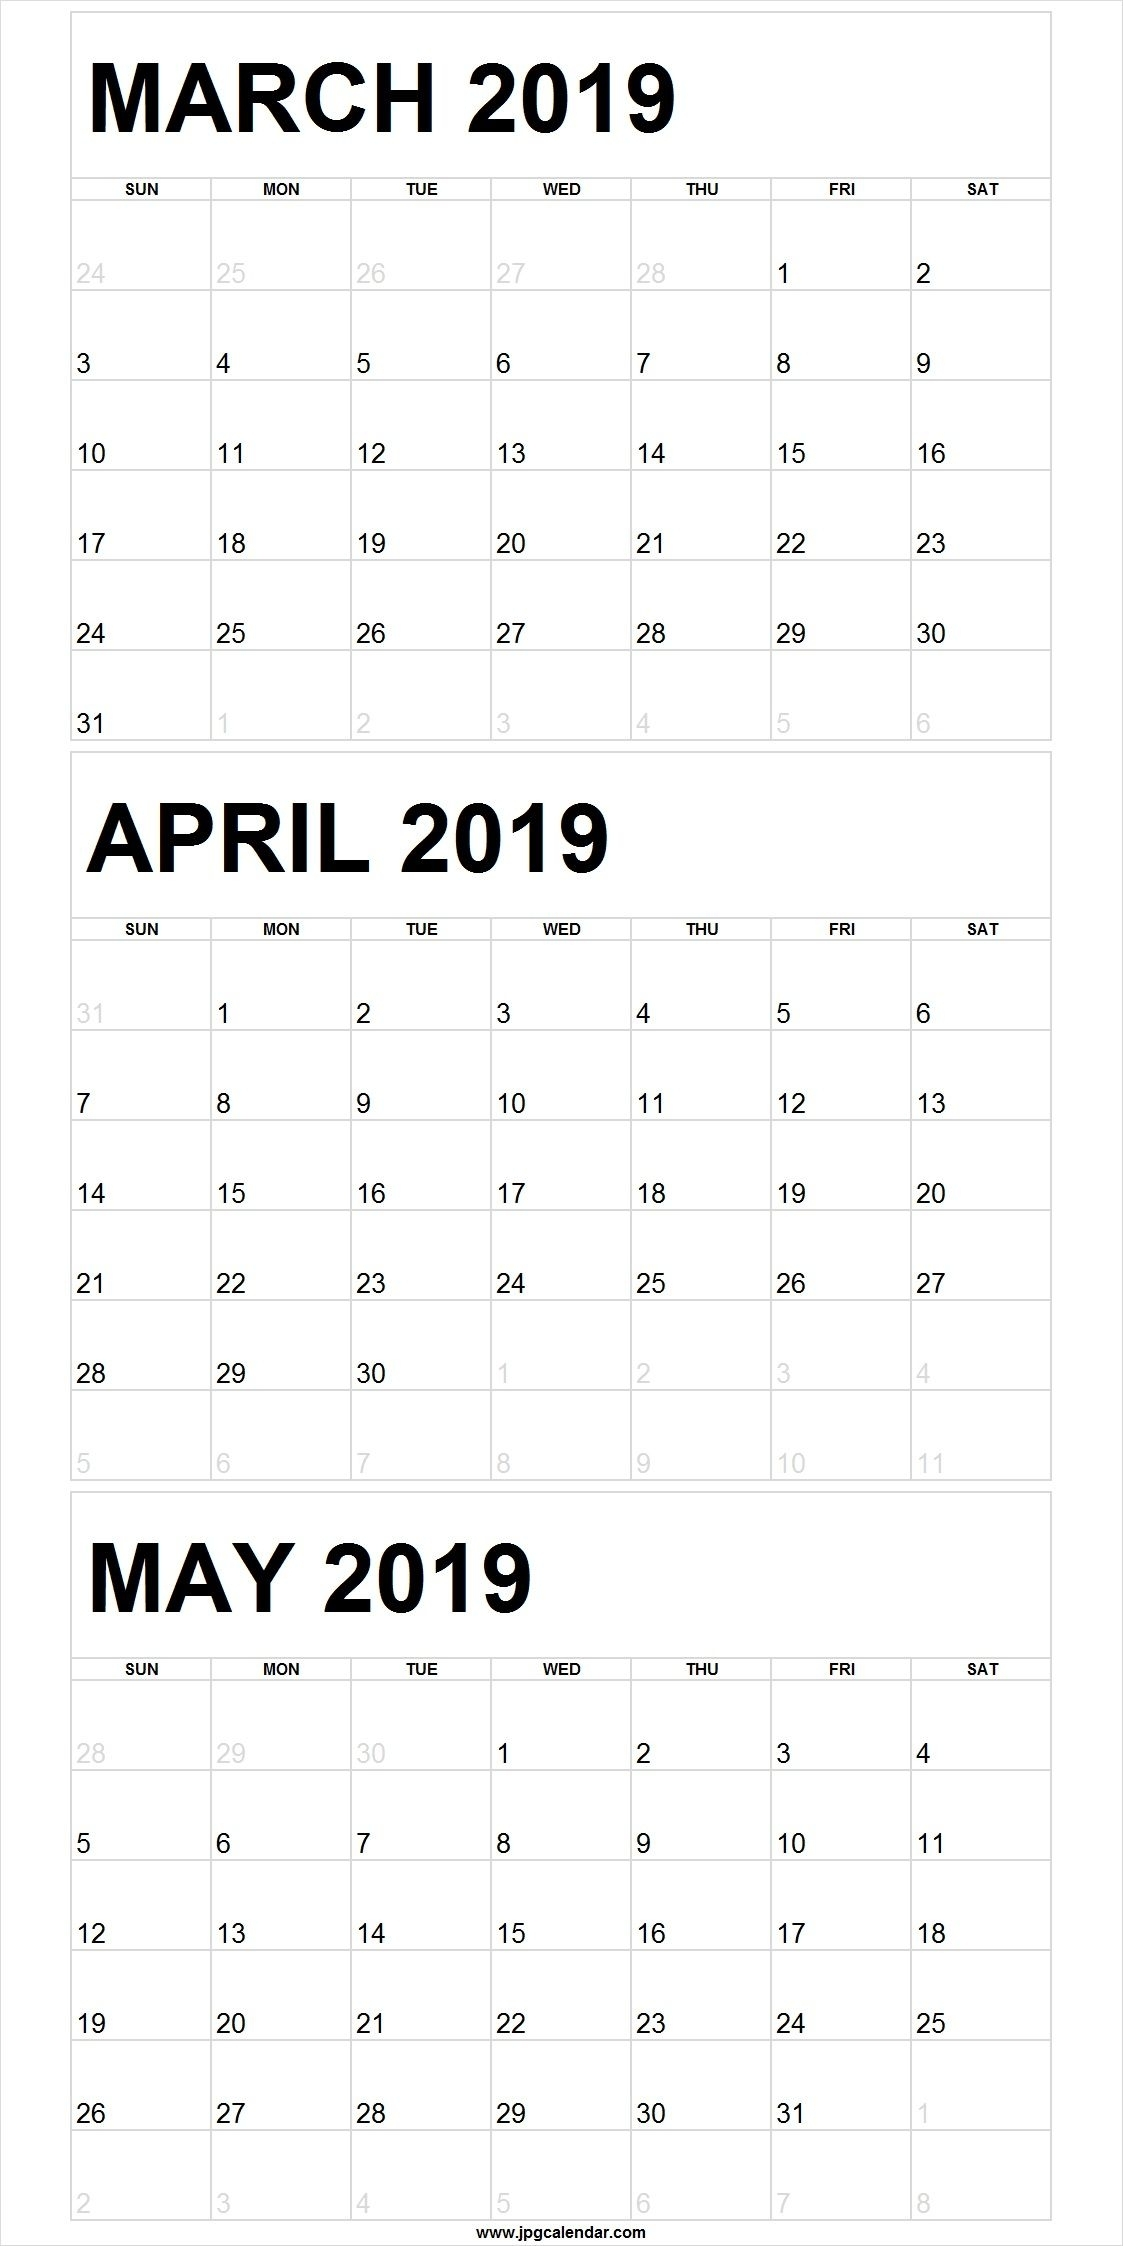 Blank March To May 2019 Calendar Printable #march #april #may in 3 Month Calendar Free Printable